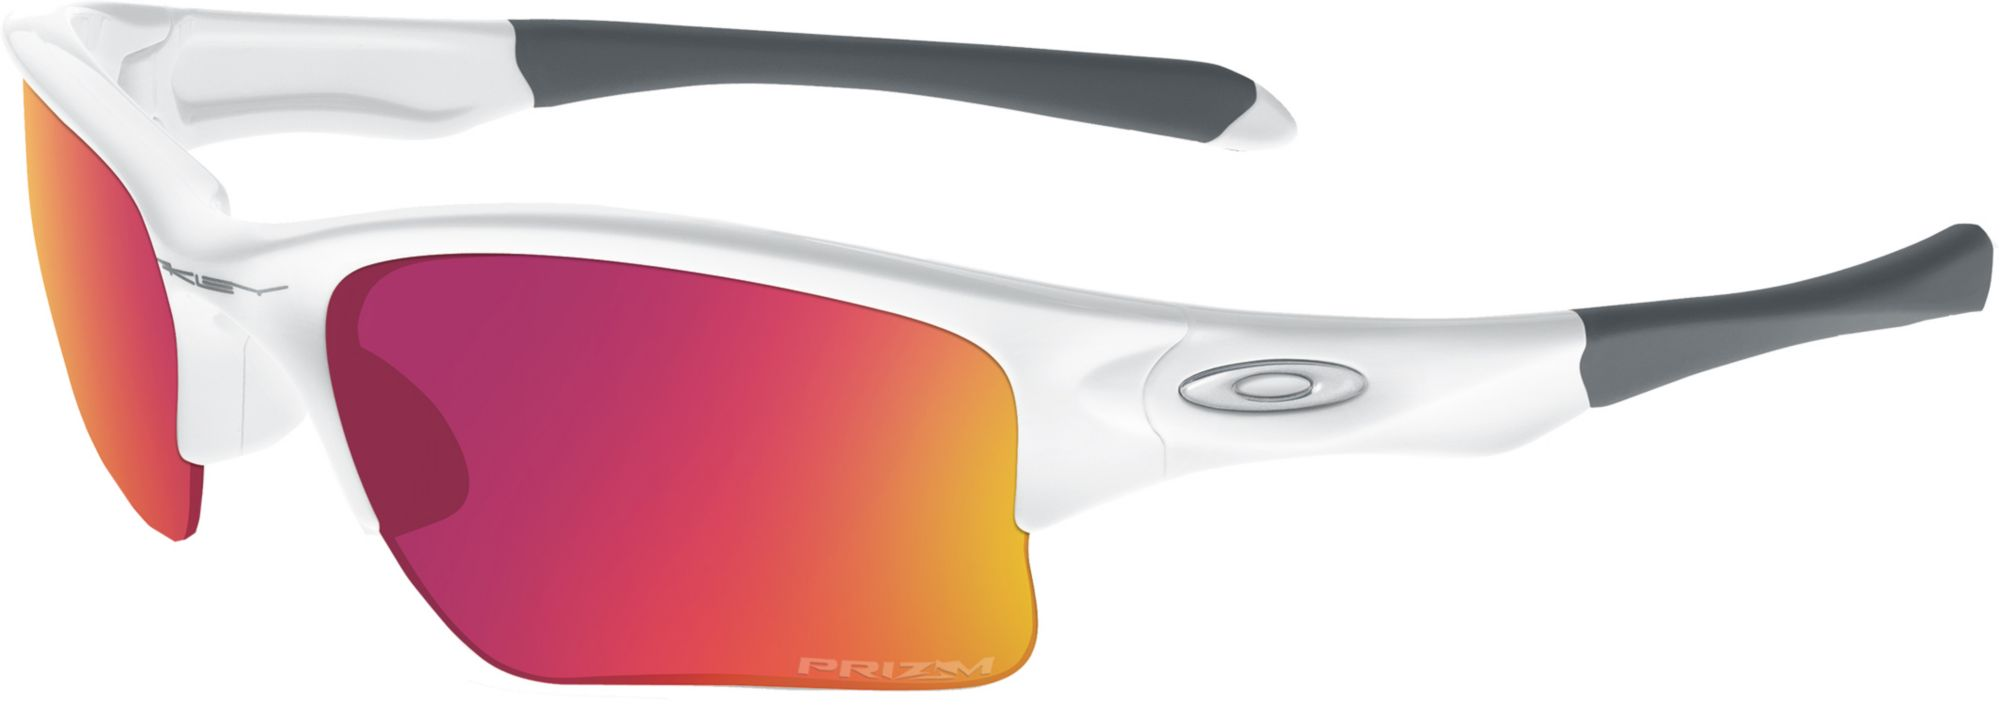 oakley outlet nh  product image oakley kids' prizm baseball quarter jacket sunglasses